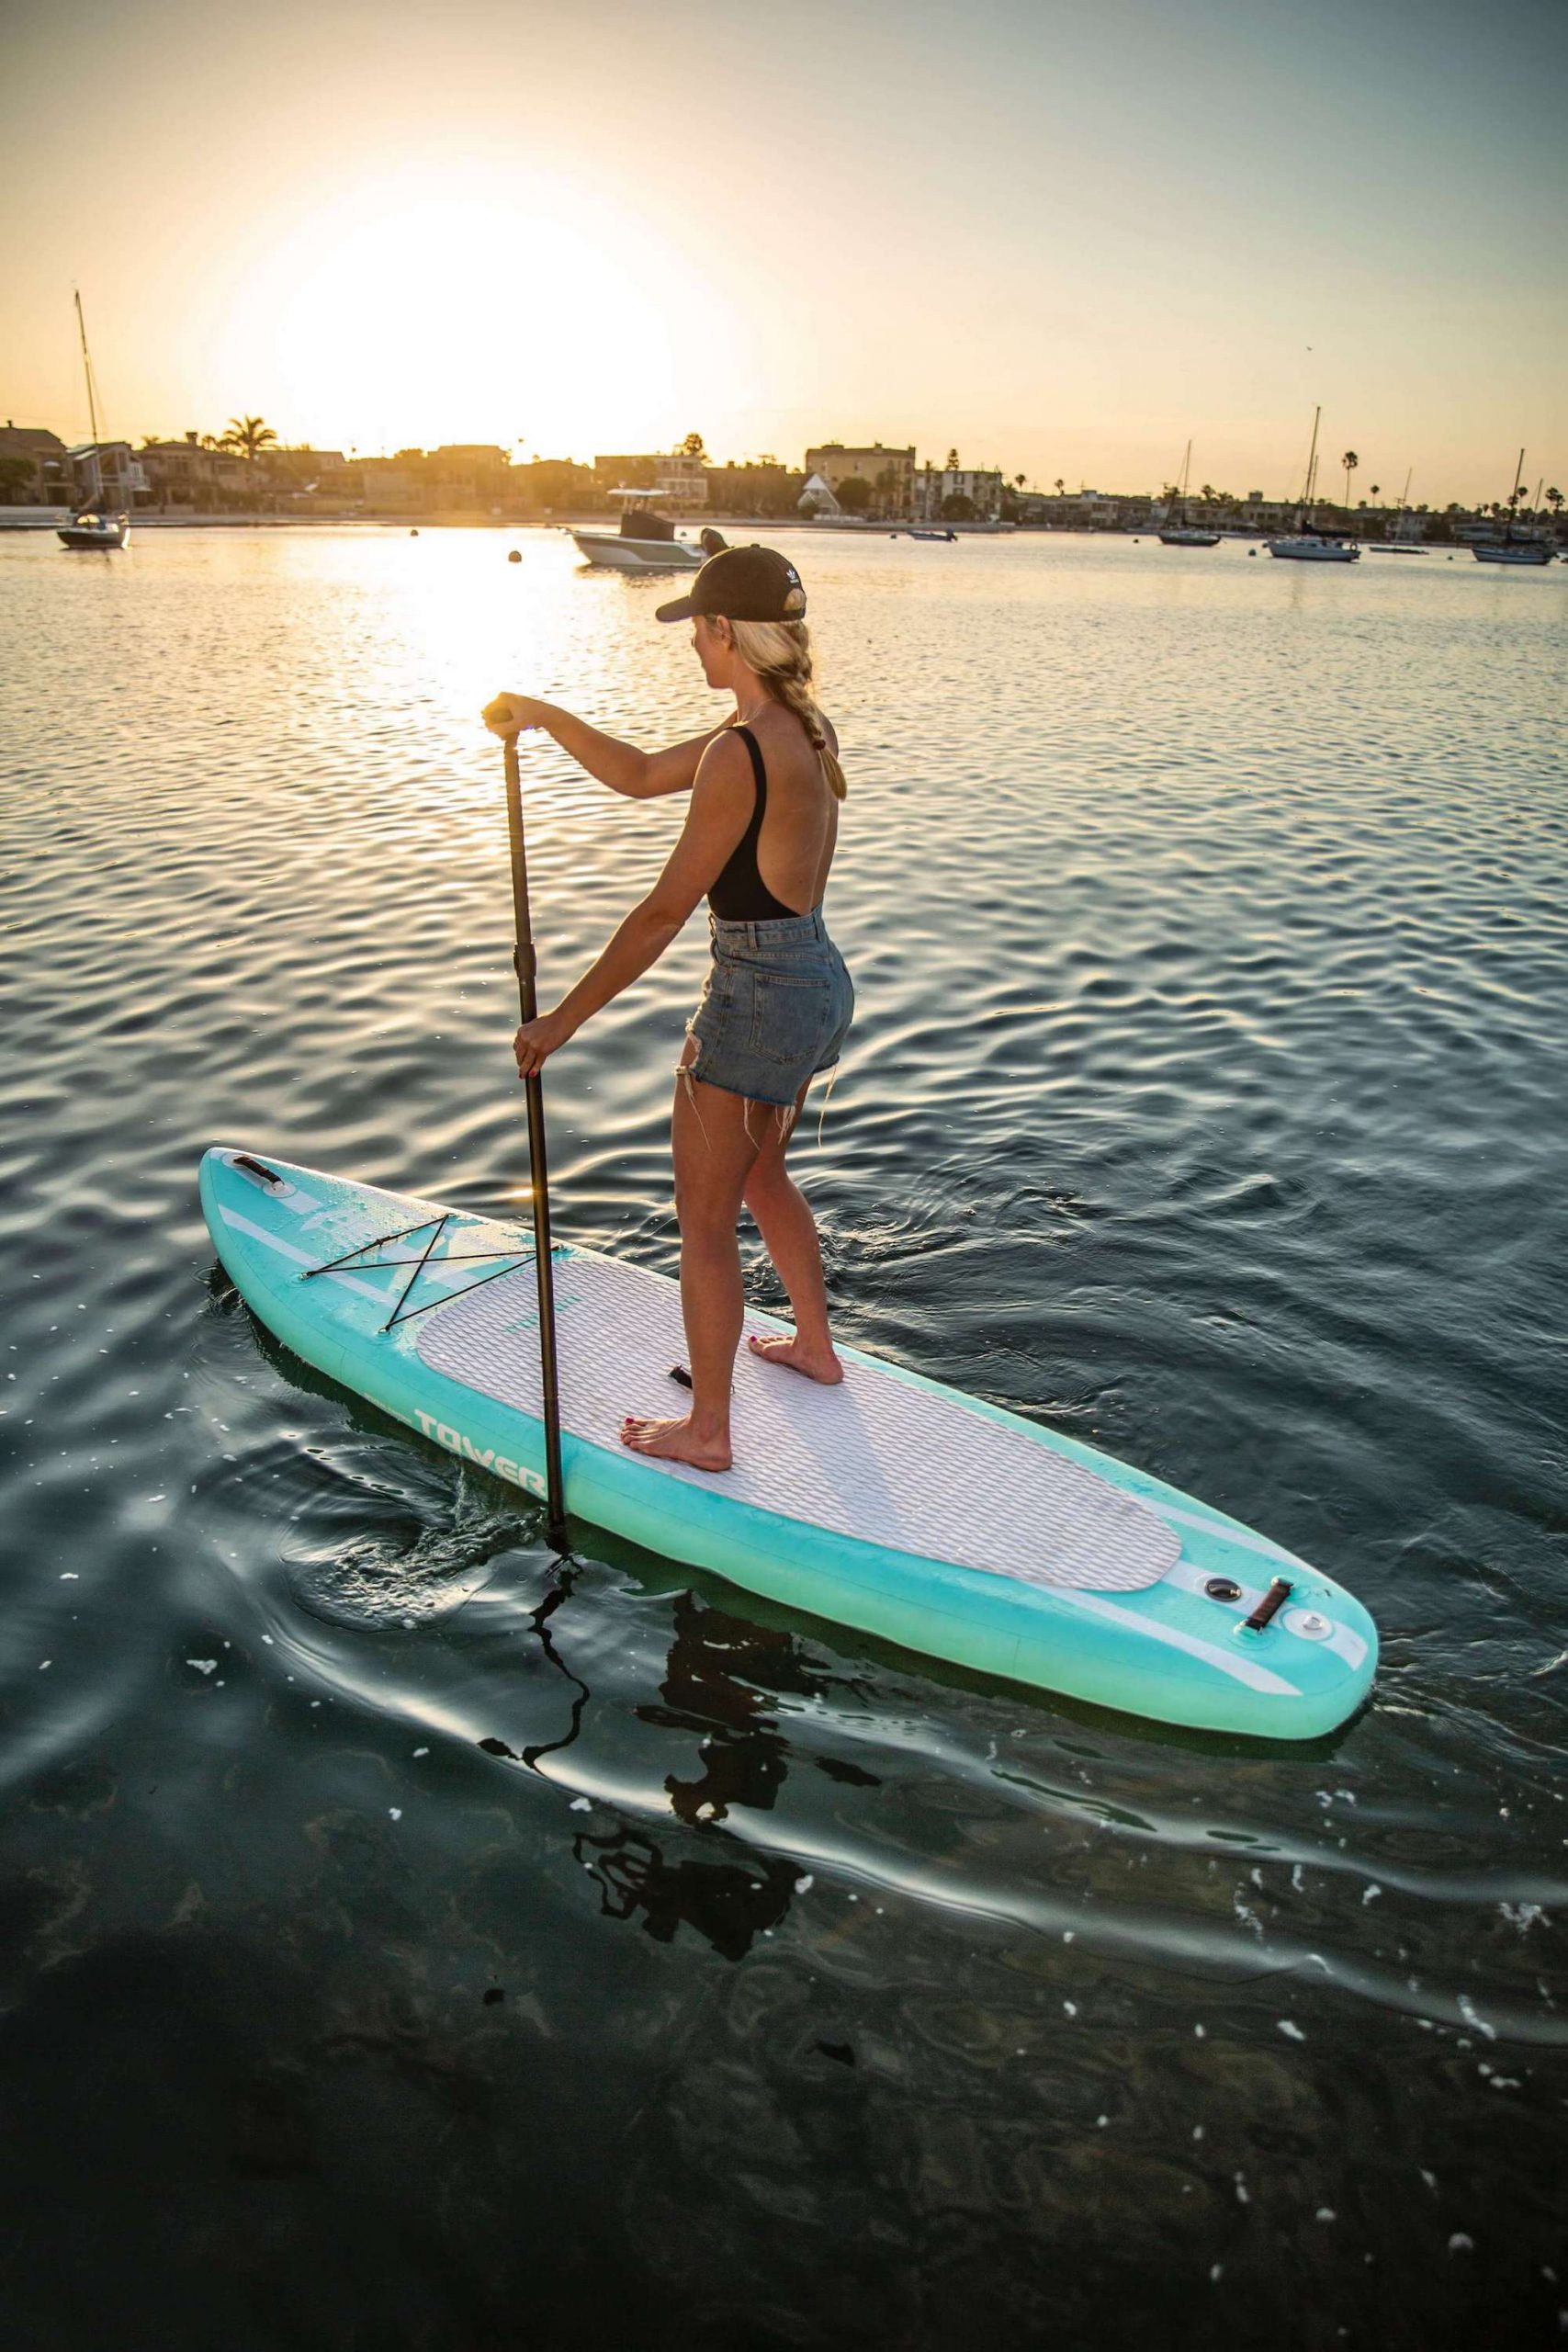 Stand-Up Paddle Boarding For The Win